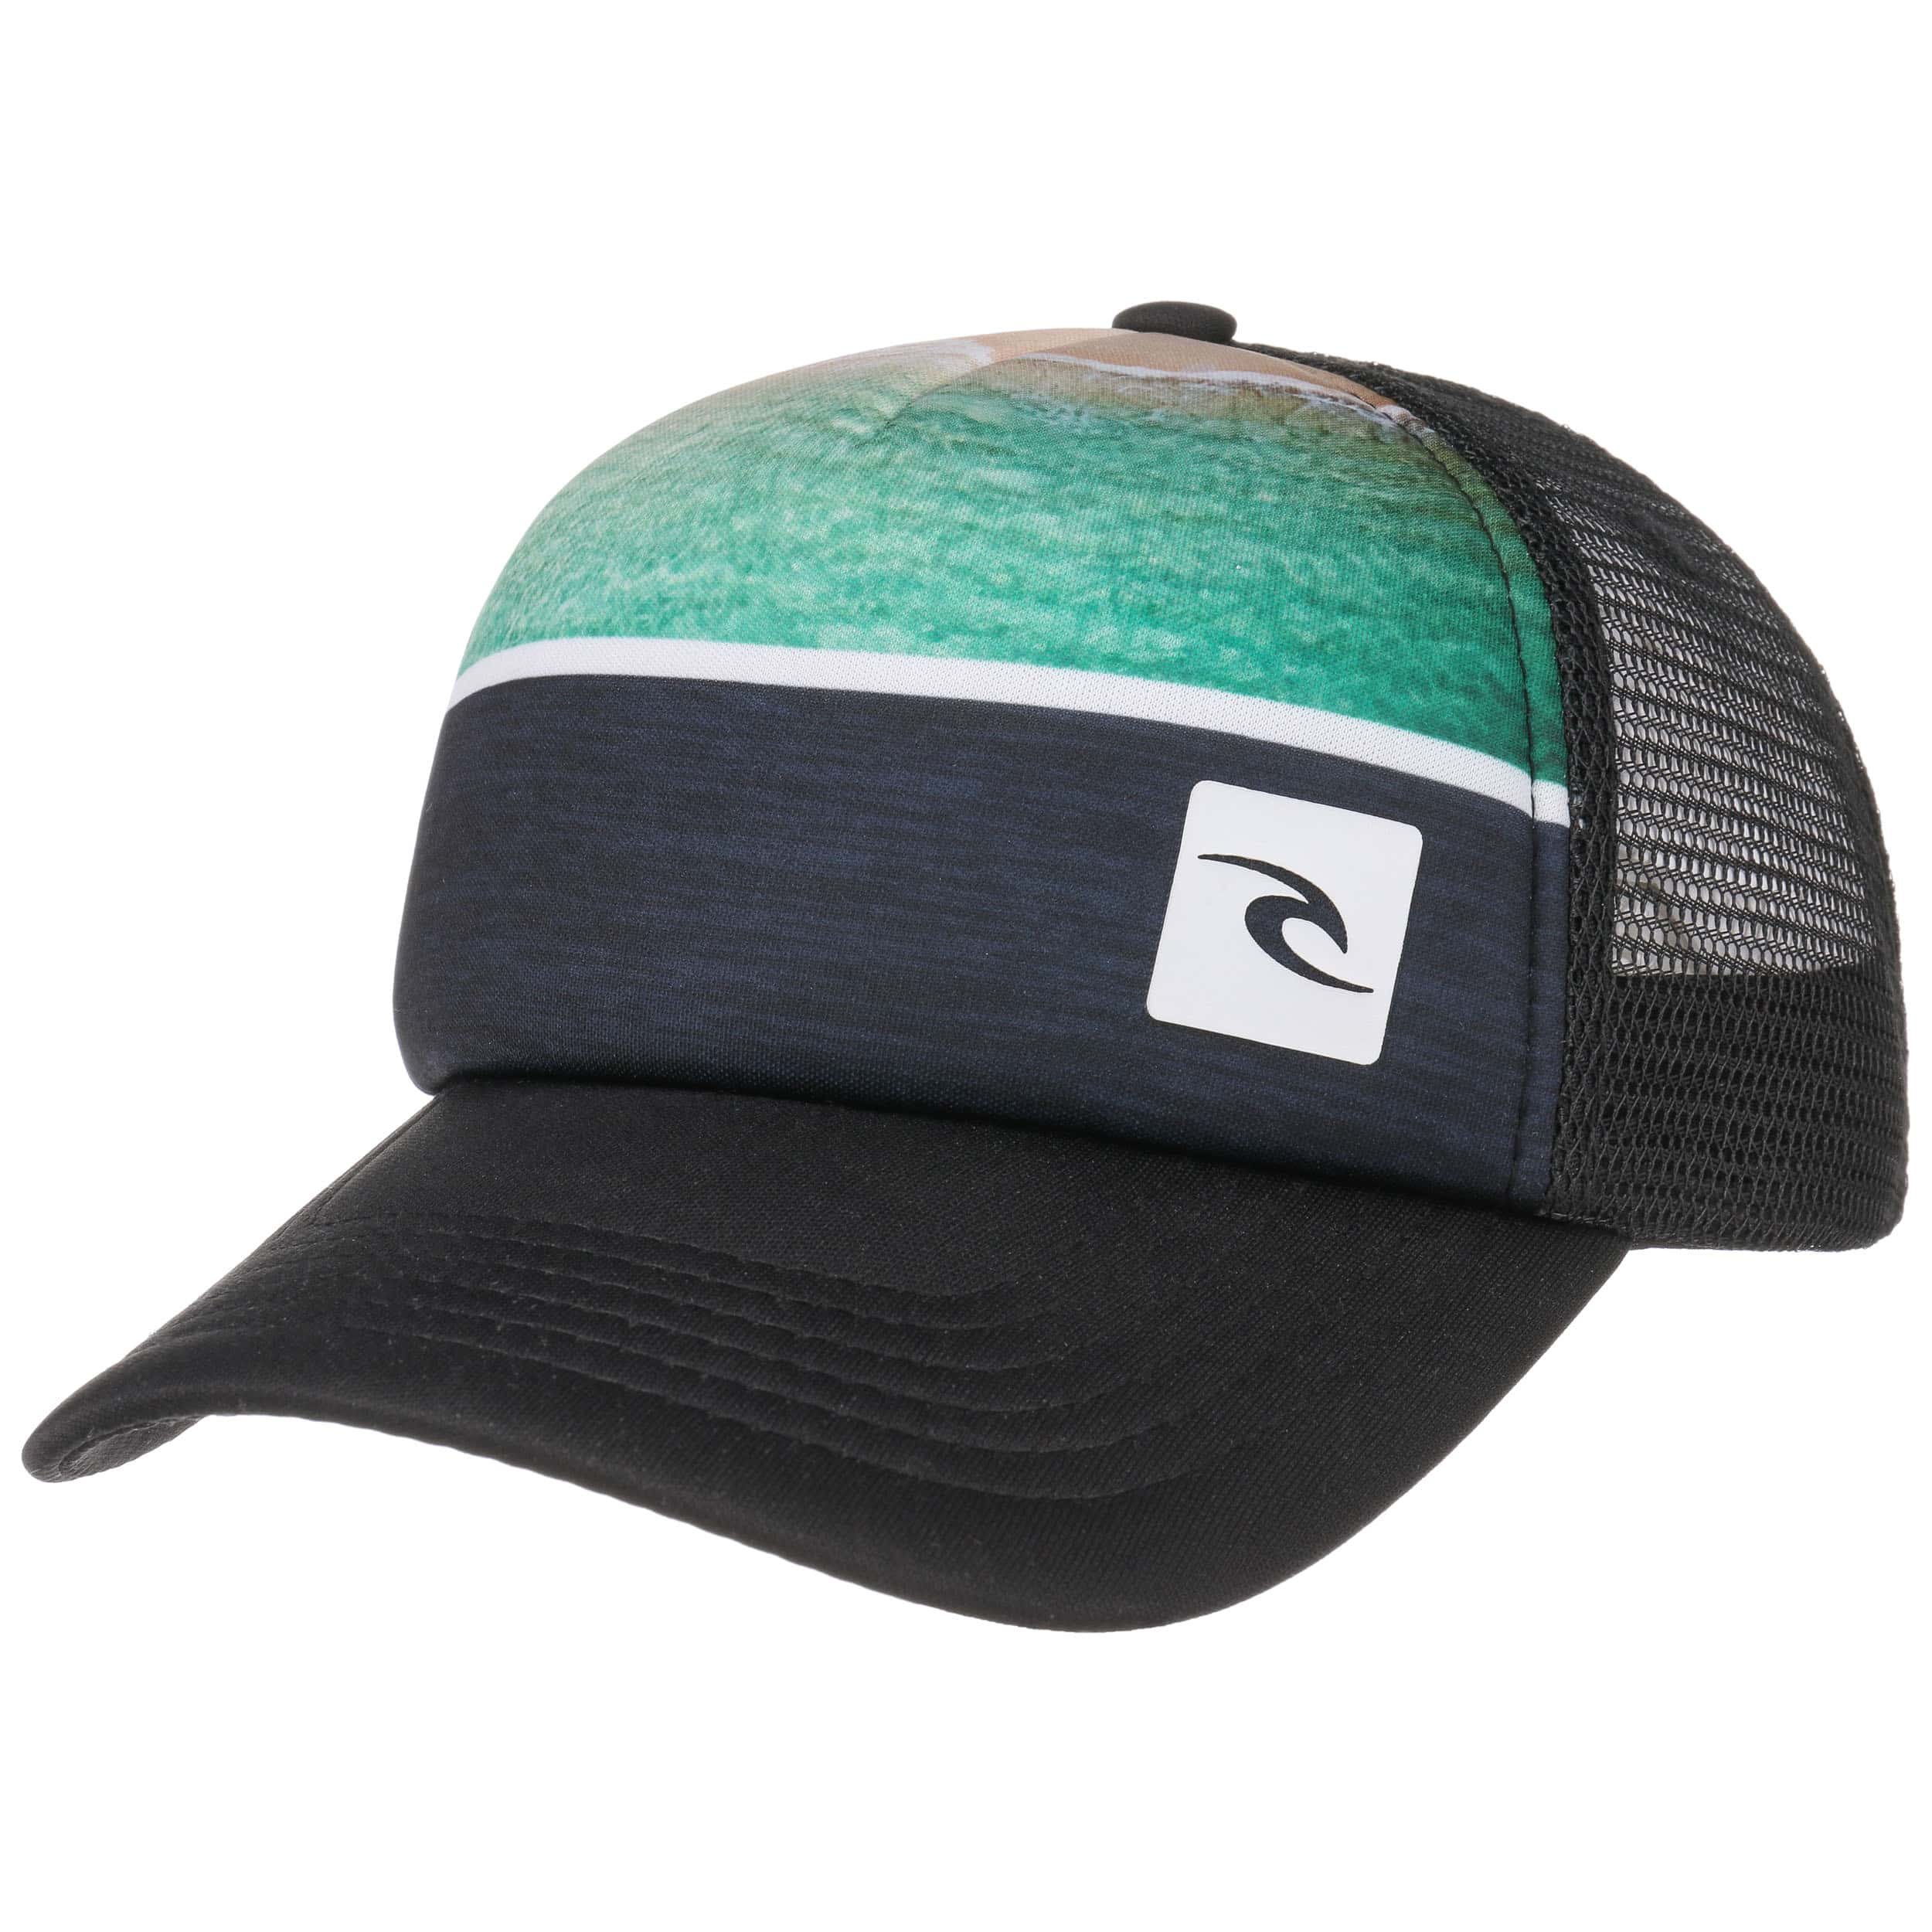 ... Kids Trucker Cap by Rip Curl - black 6 4468c84d25c9